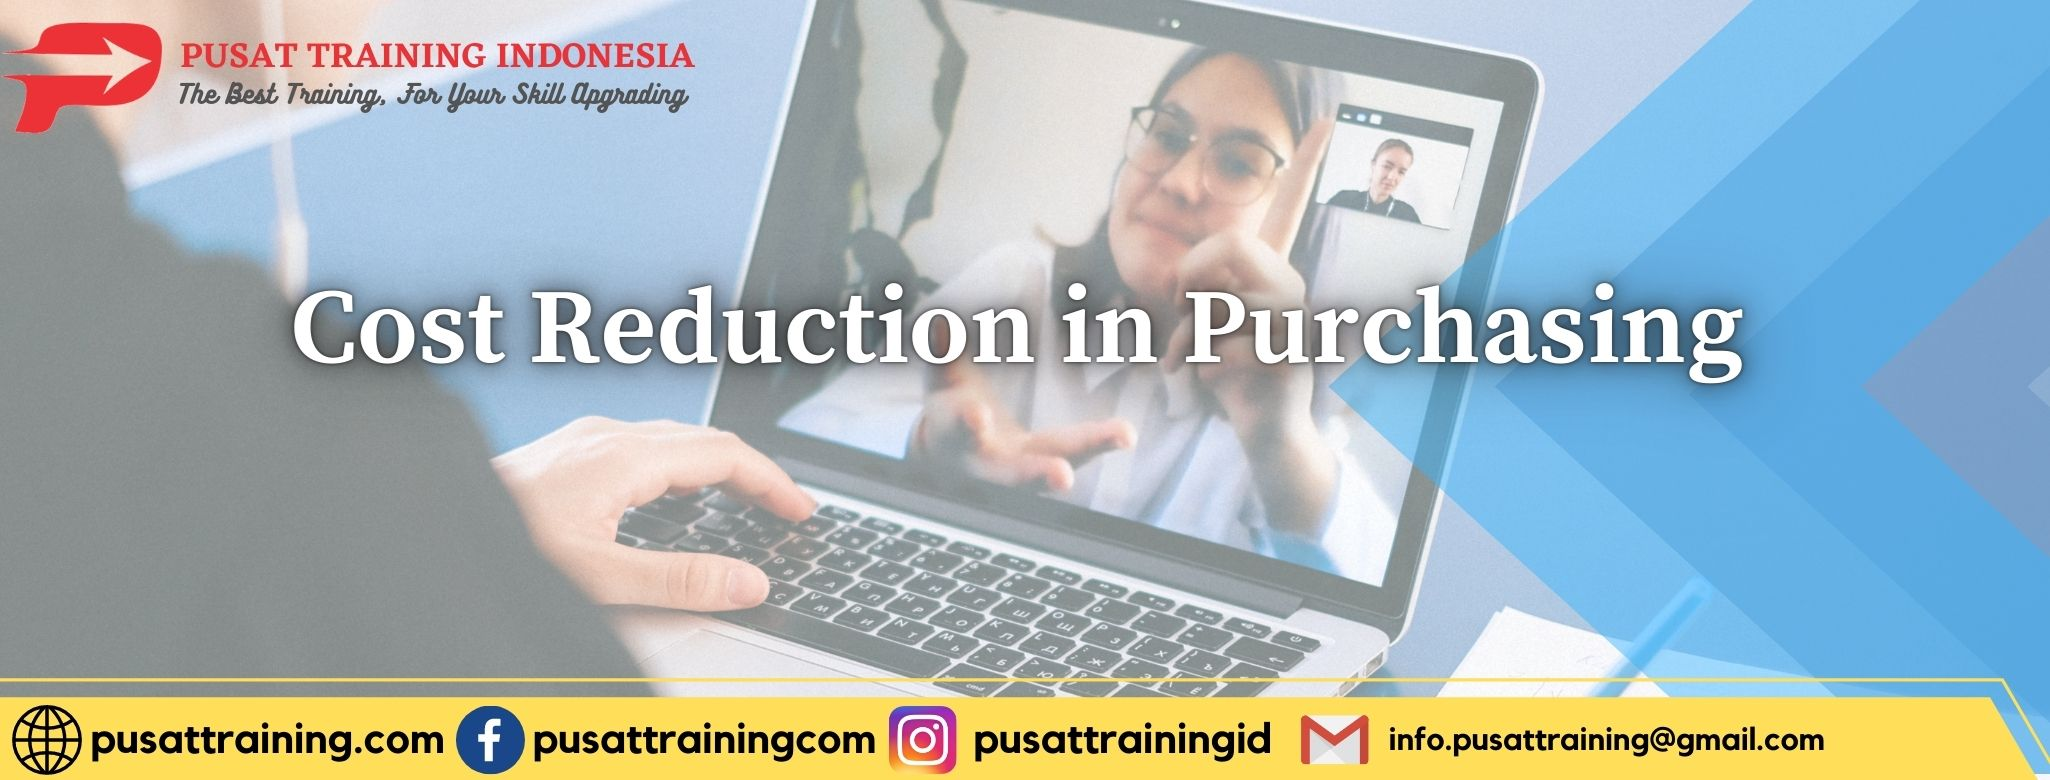 Cost-Reduction-in-Purchasing